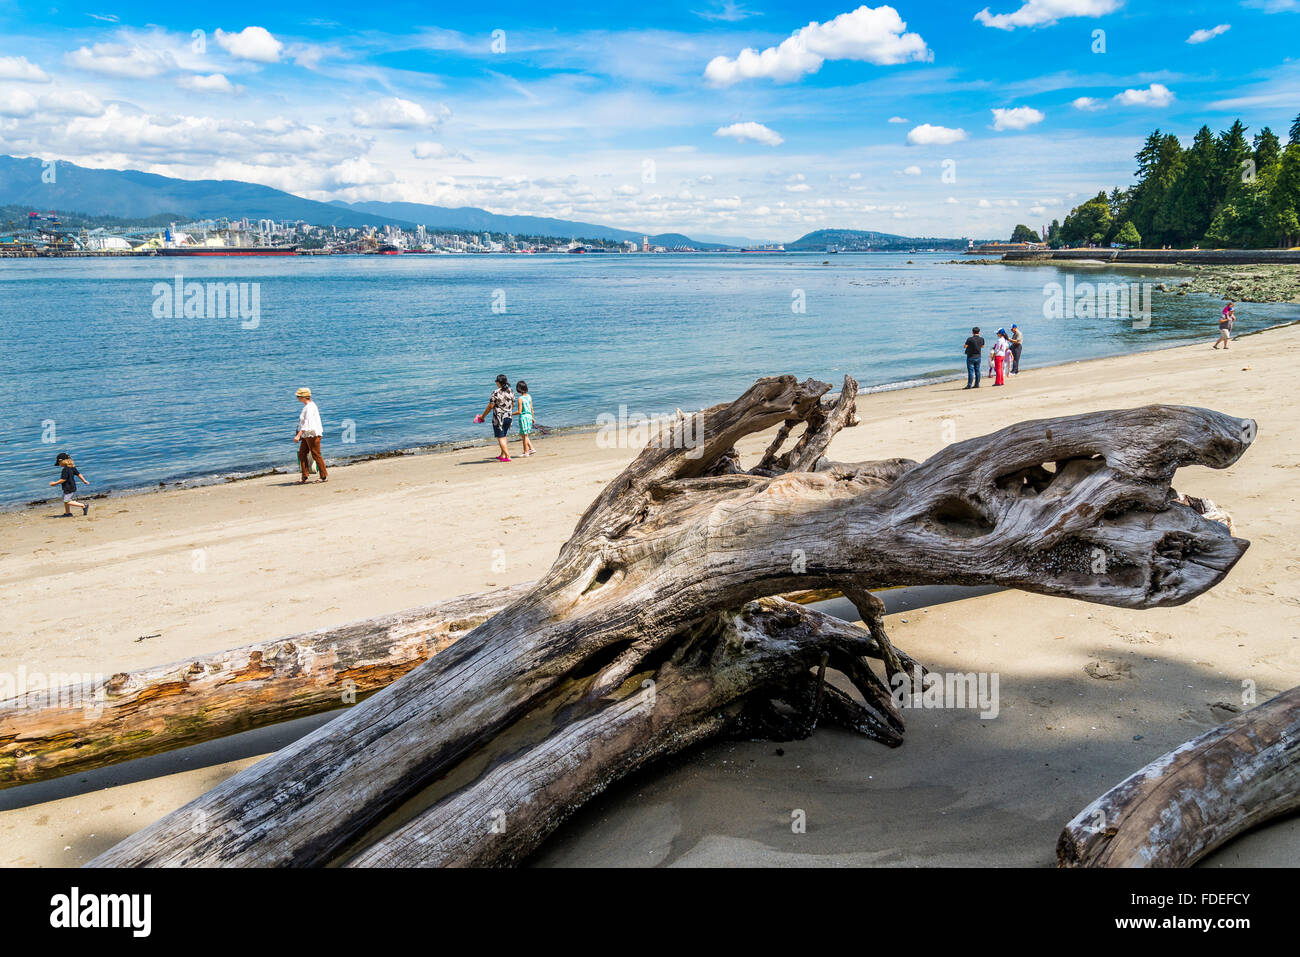 Driftwood logs on beach at Stanley Park, Vancouver, British Columbia, Canada - Stock Image